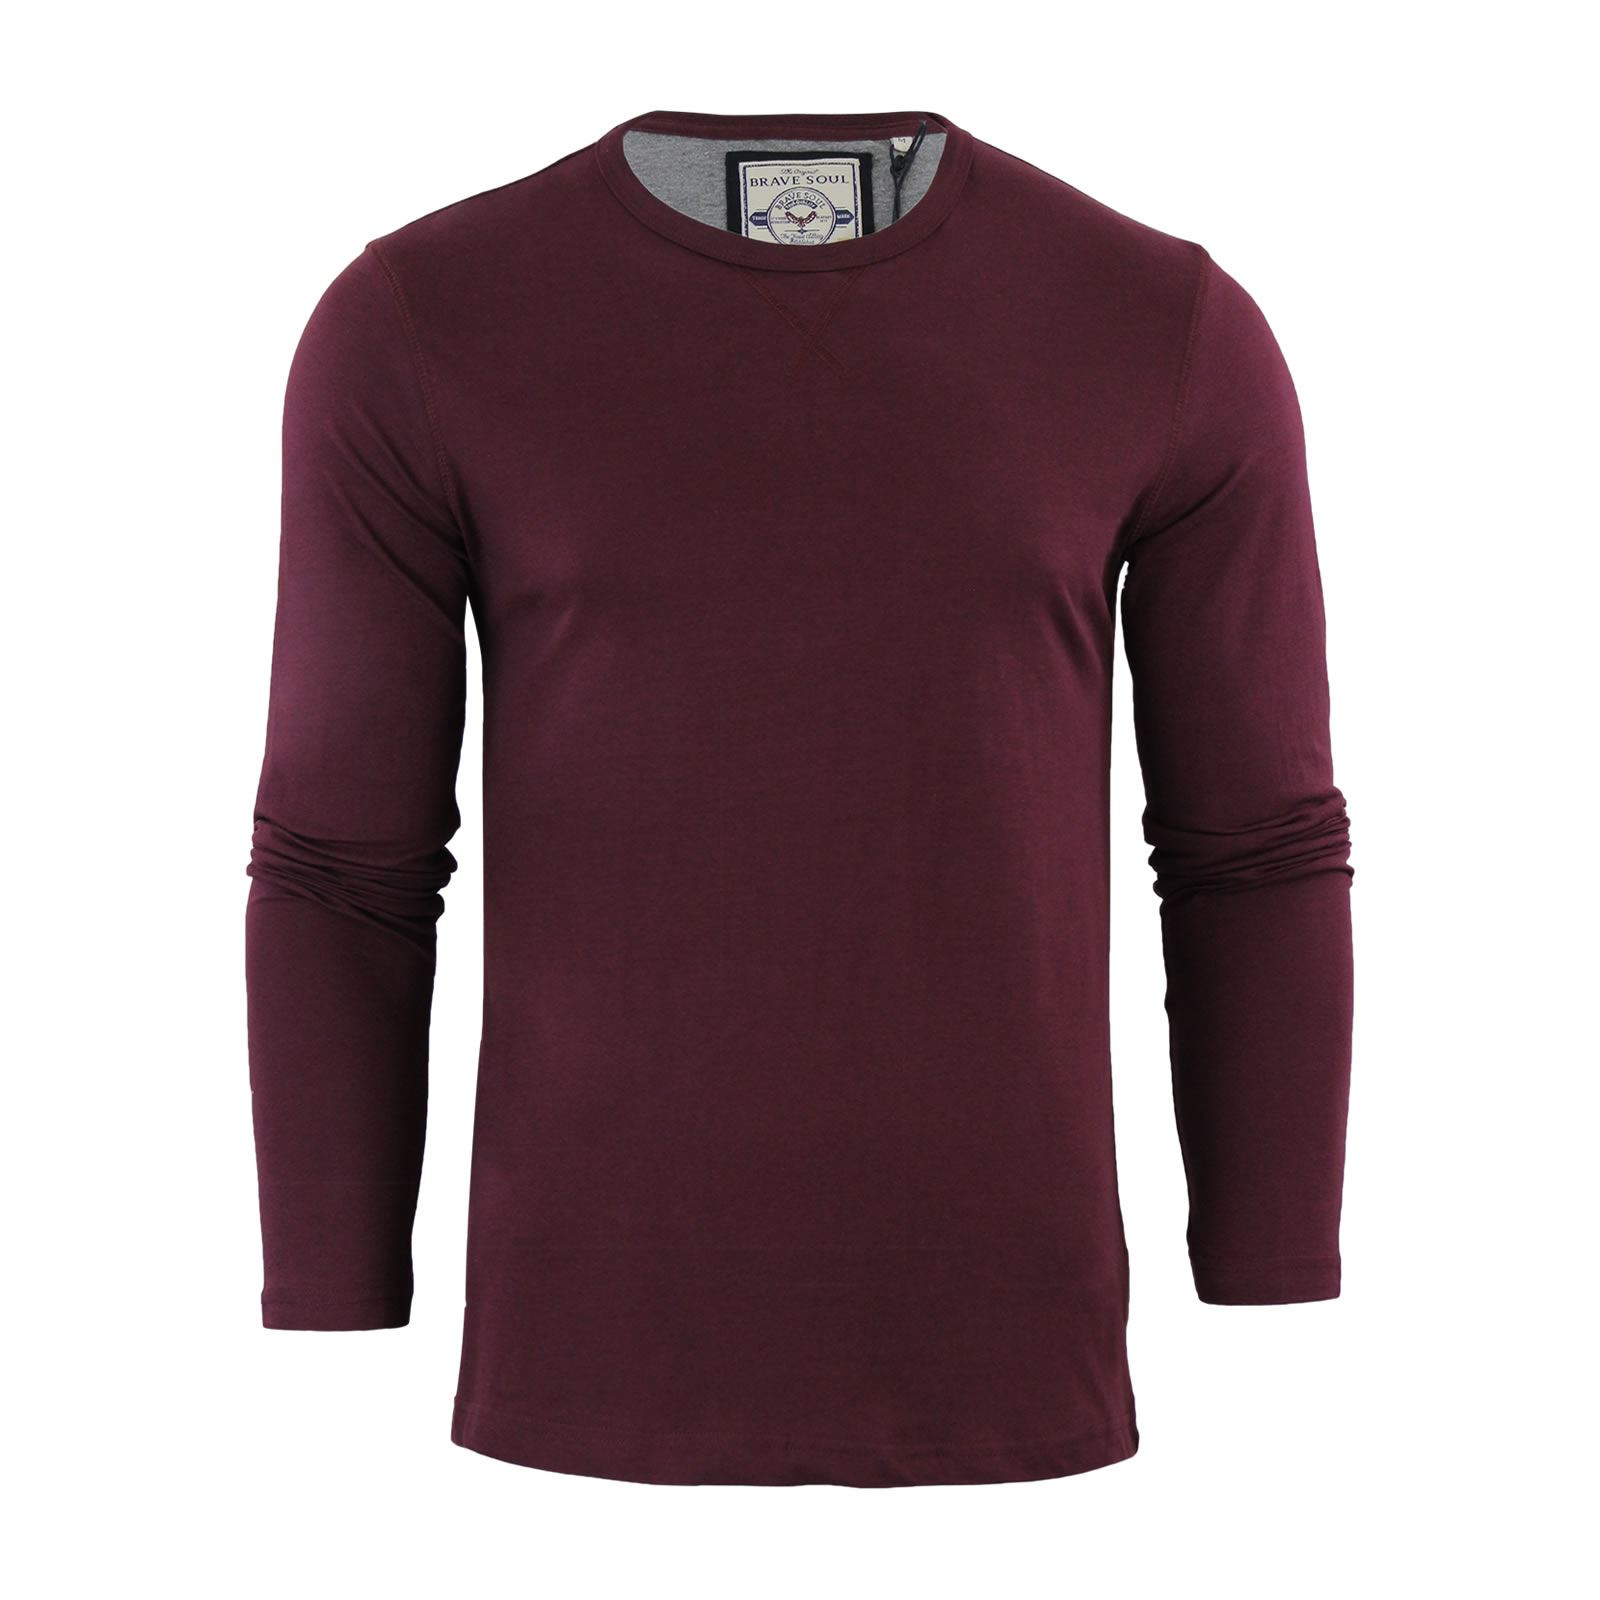 Brave-Soul-Prague-Mens-T-Shirt-by-Cotton-Long-Sleeved-Crew-Neck-Casual-Top thumbnail 16